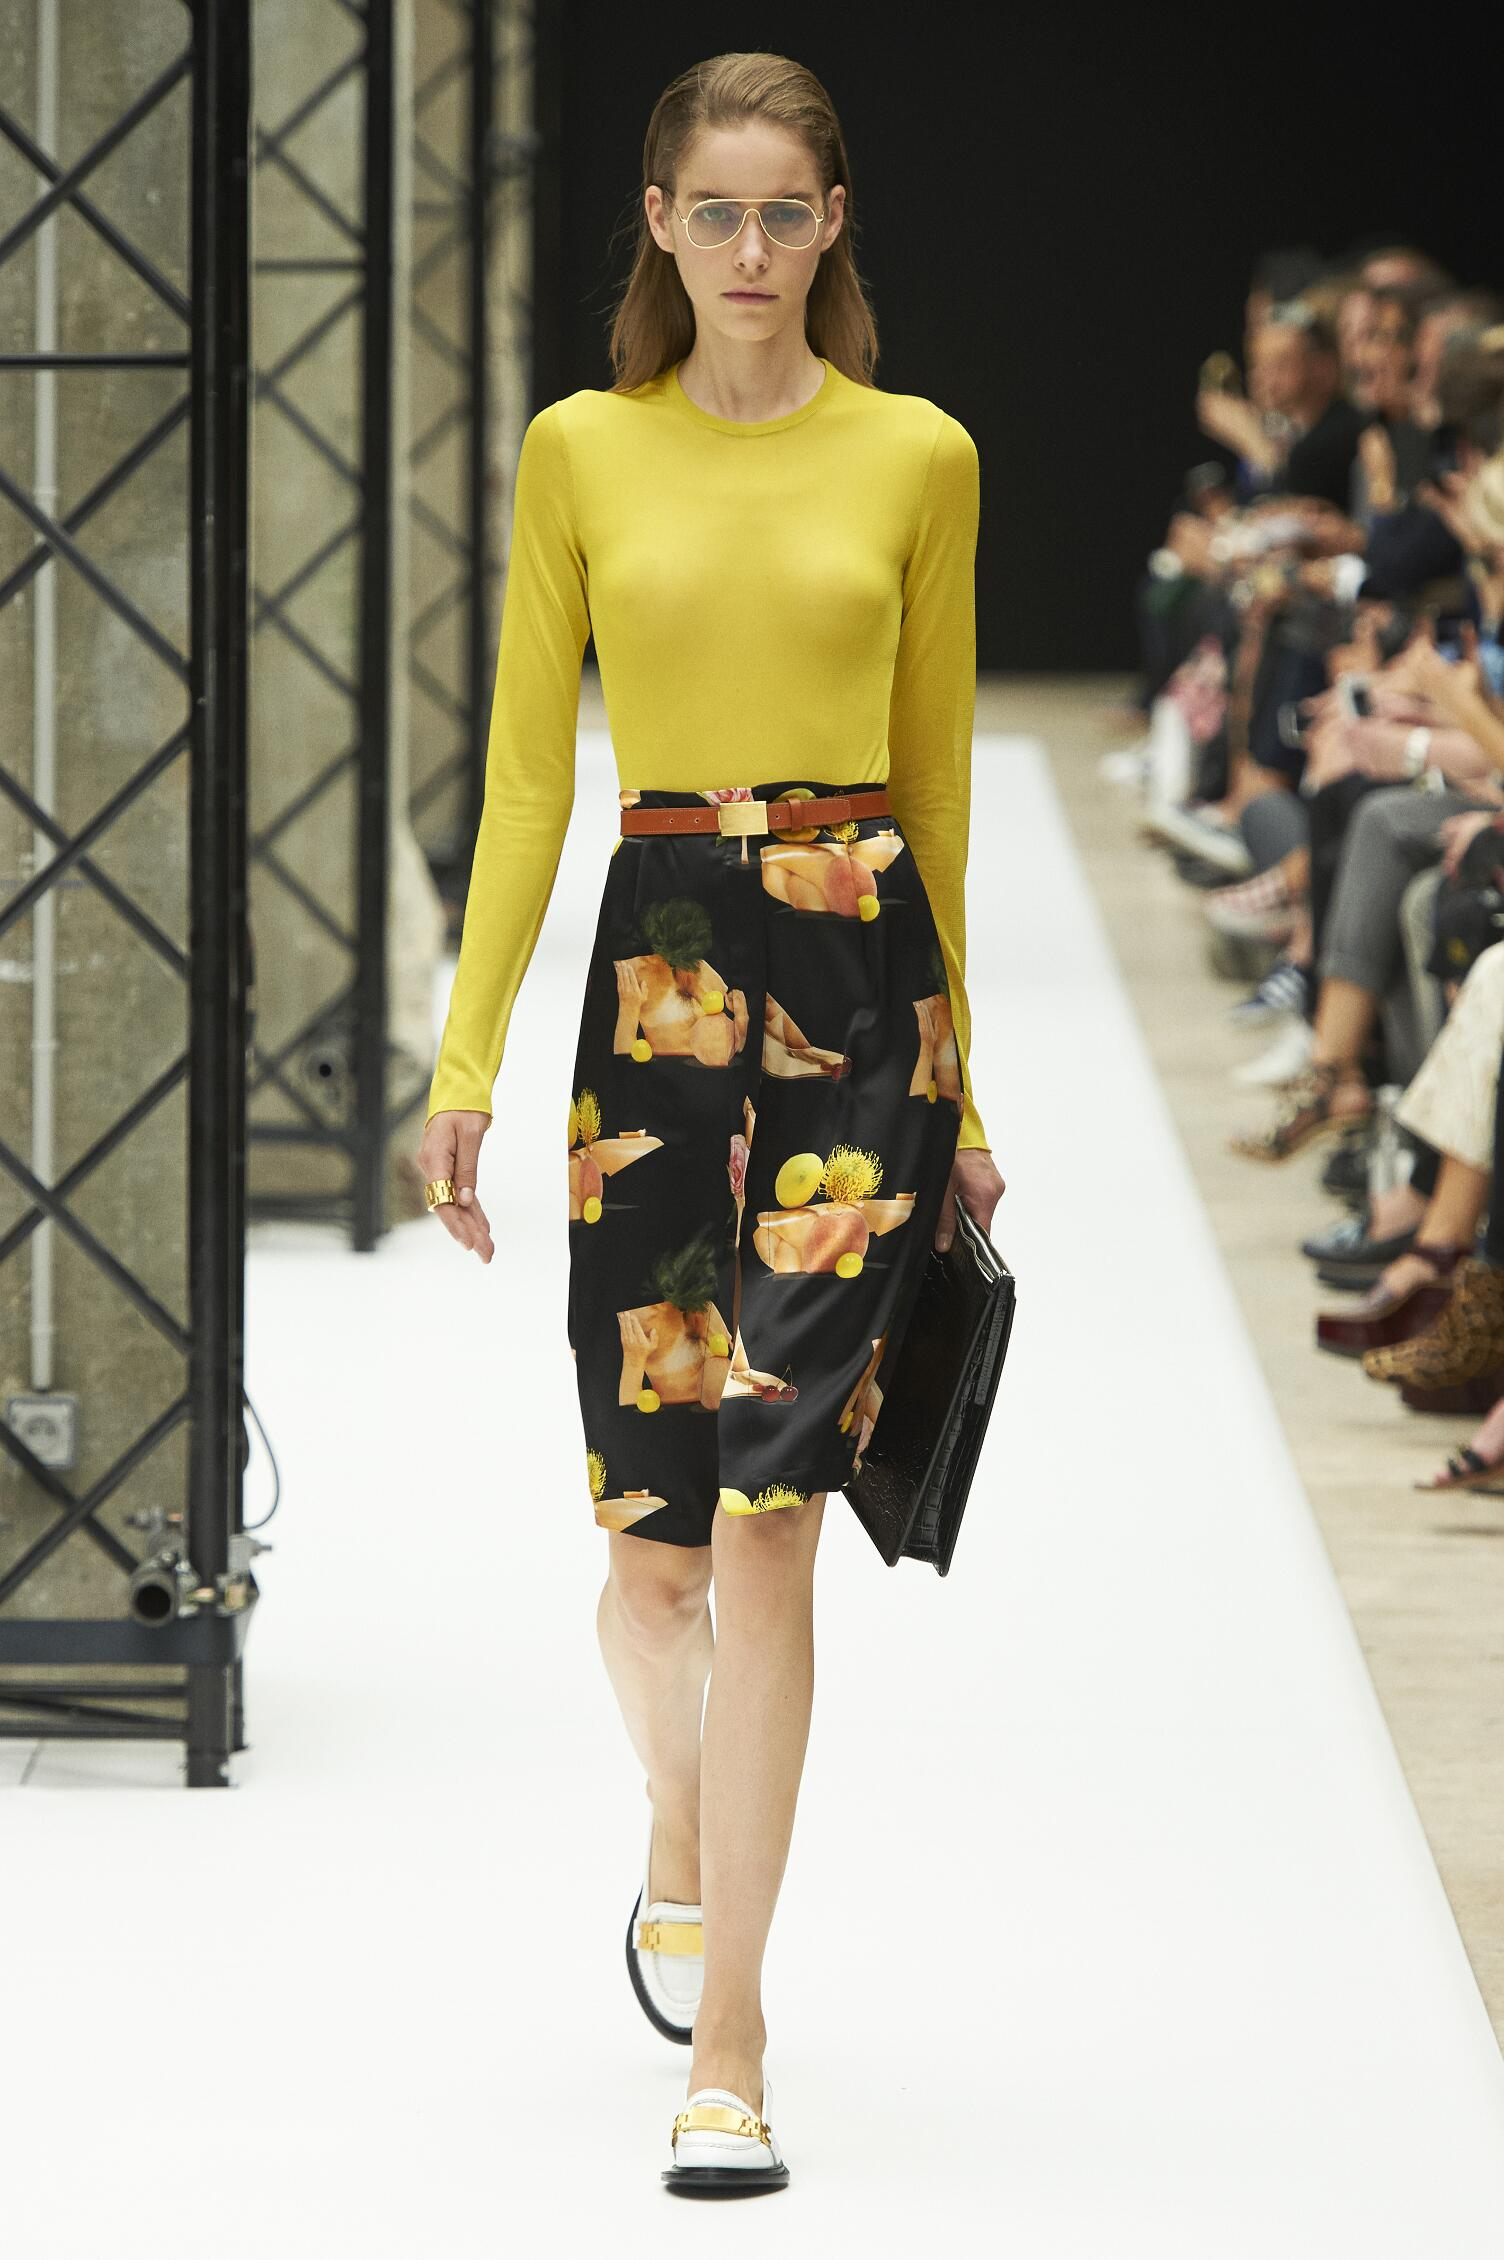 ACNE STUDIOS SPRING SUMMER 2015 WOMEN'S COLLECTION | The ...